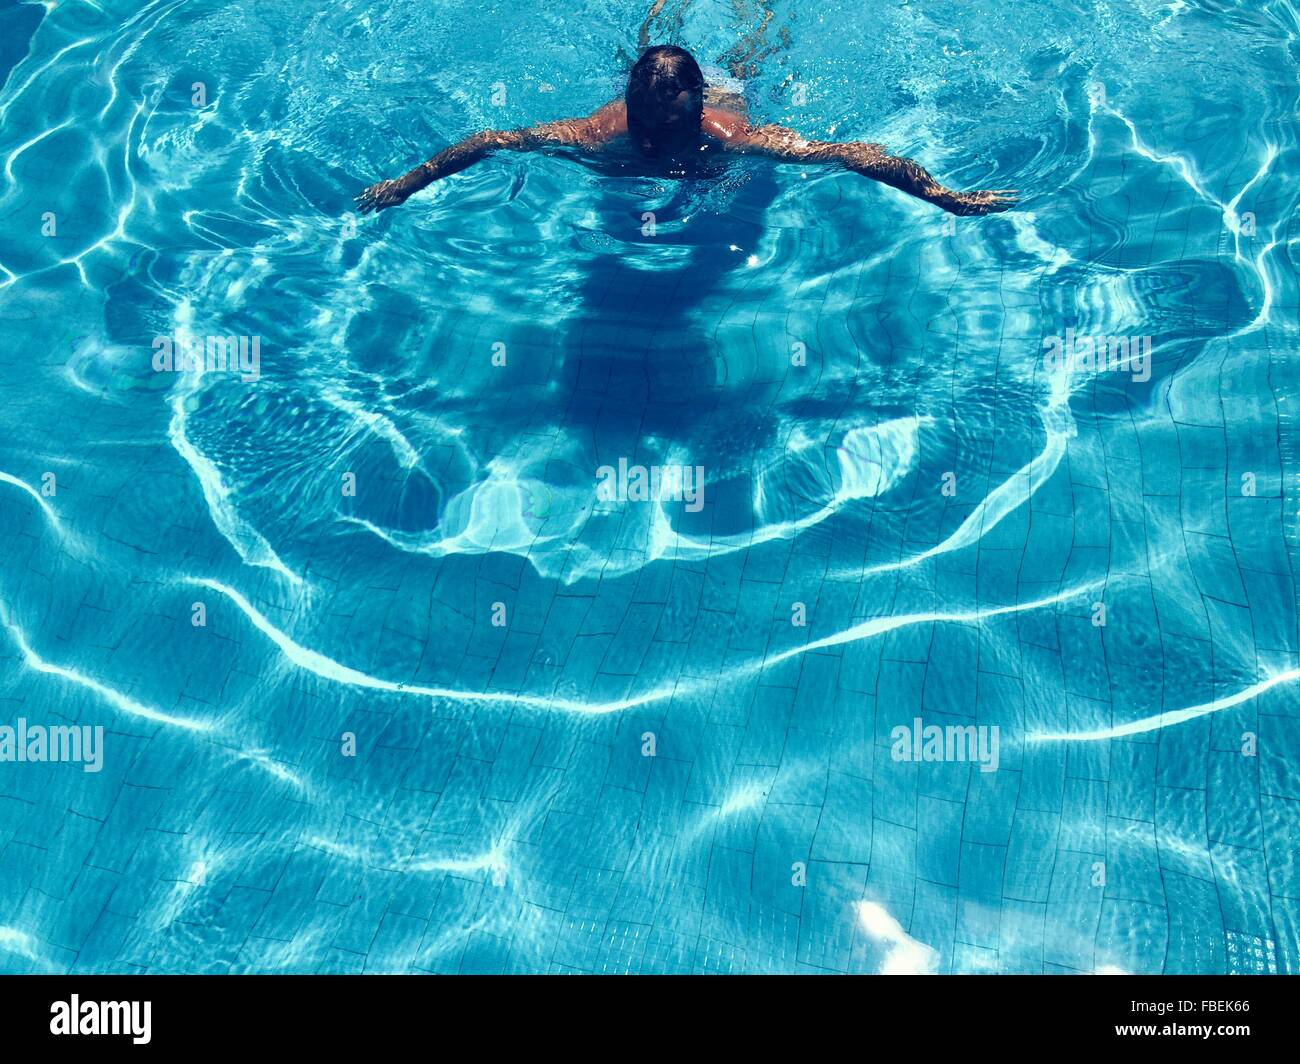 High Angle View Of Man Swimming In Pool Photo Stock